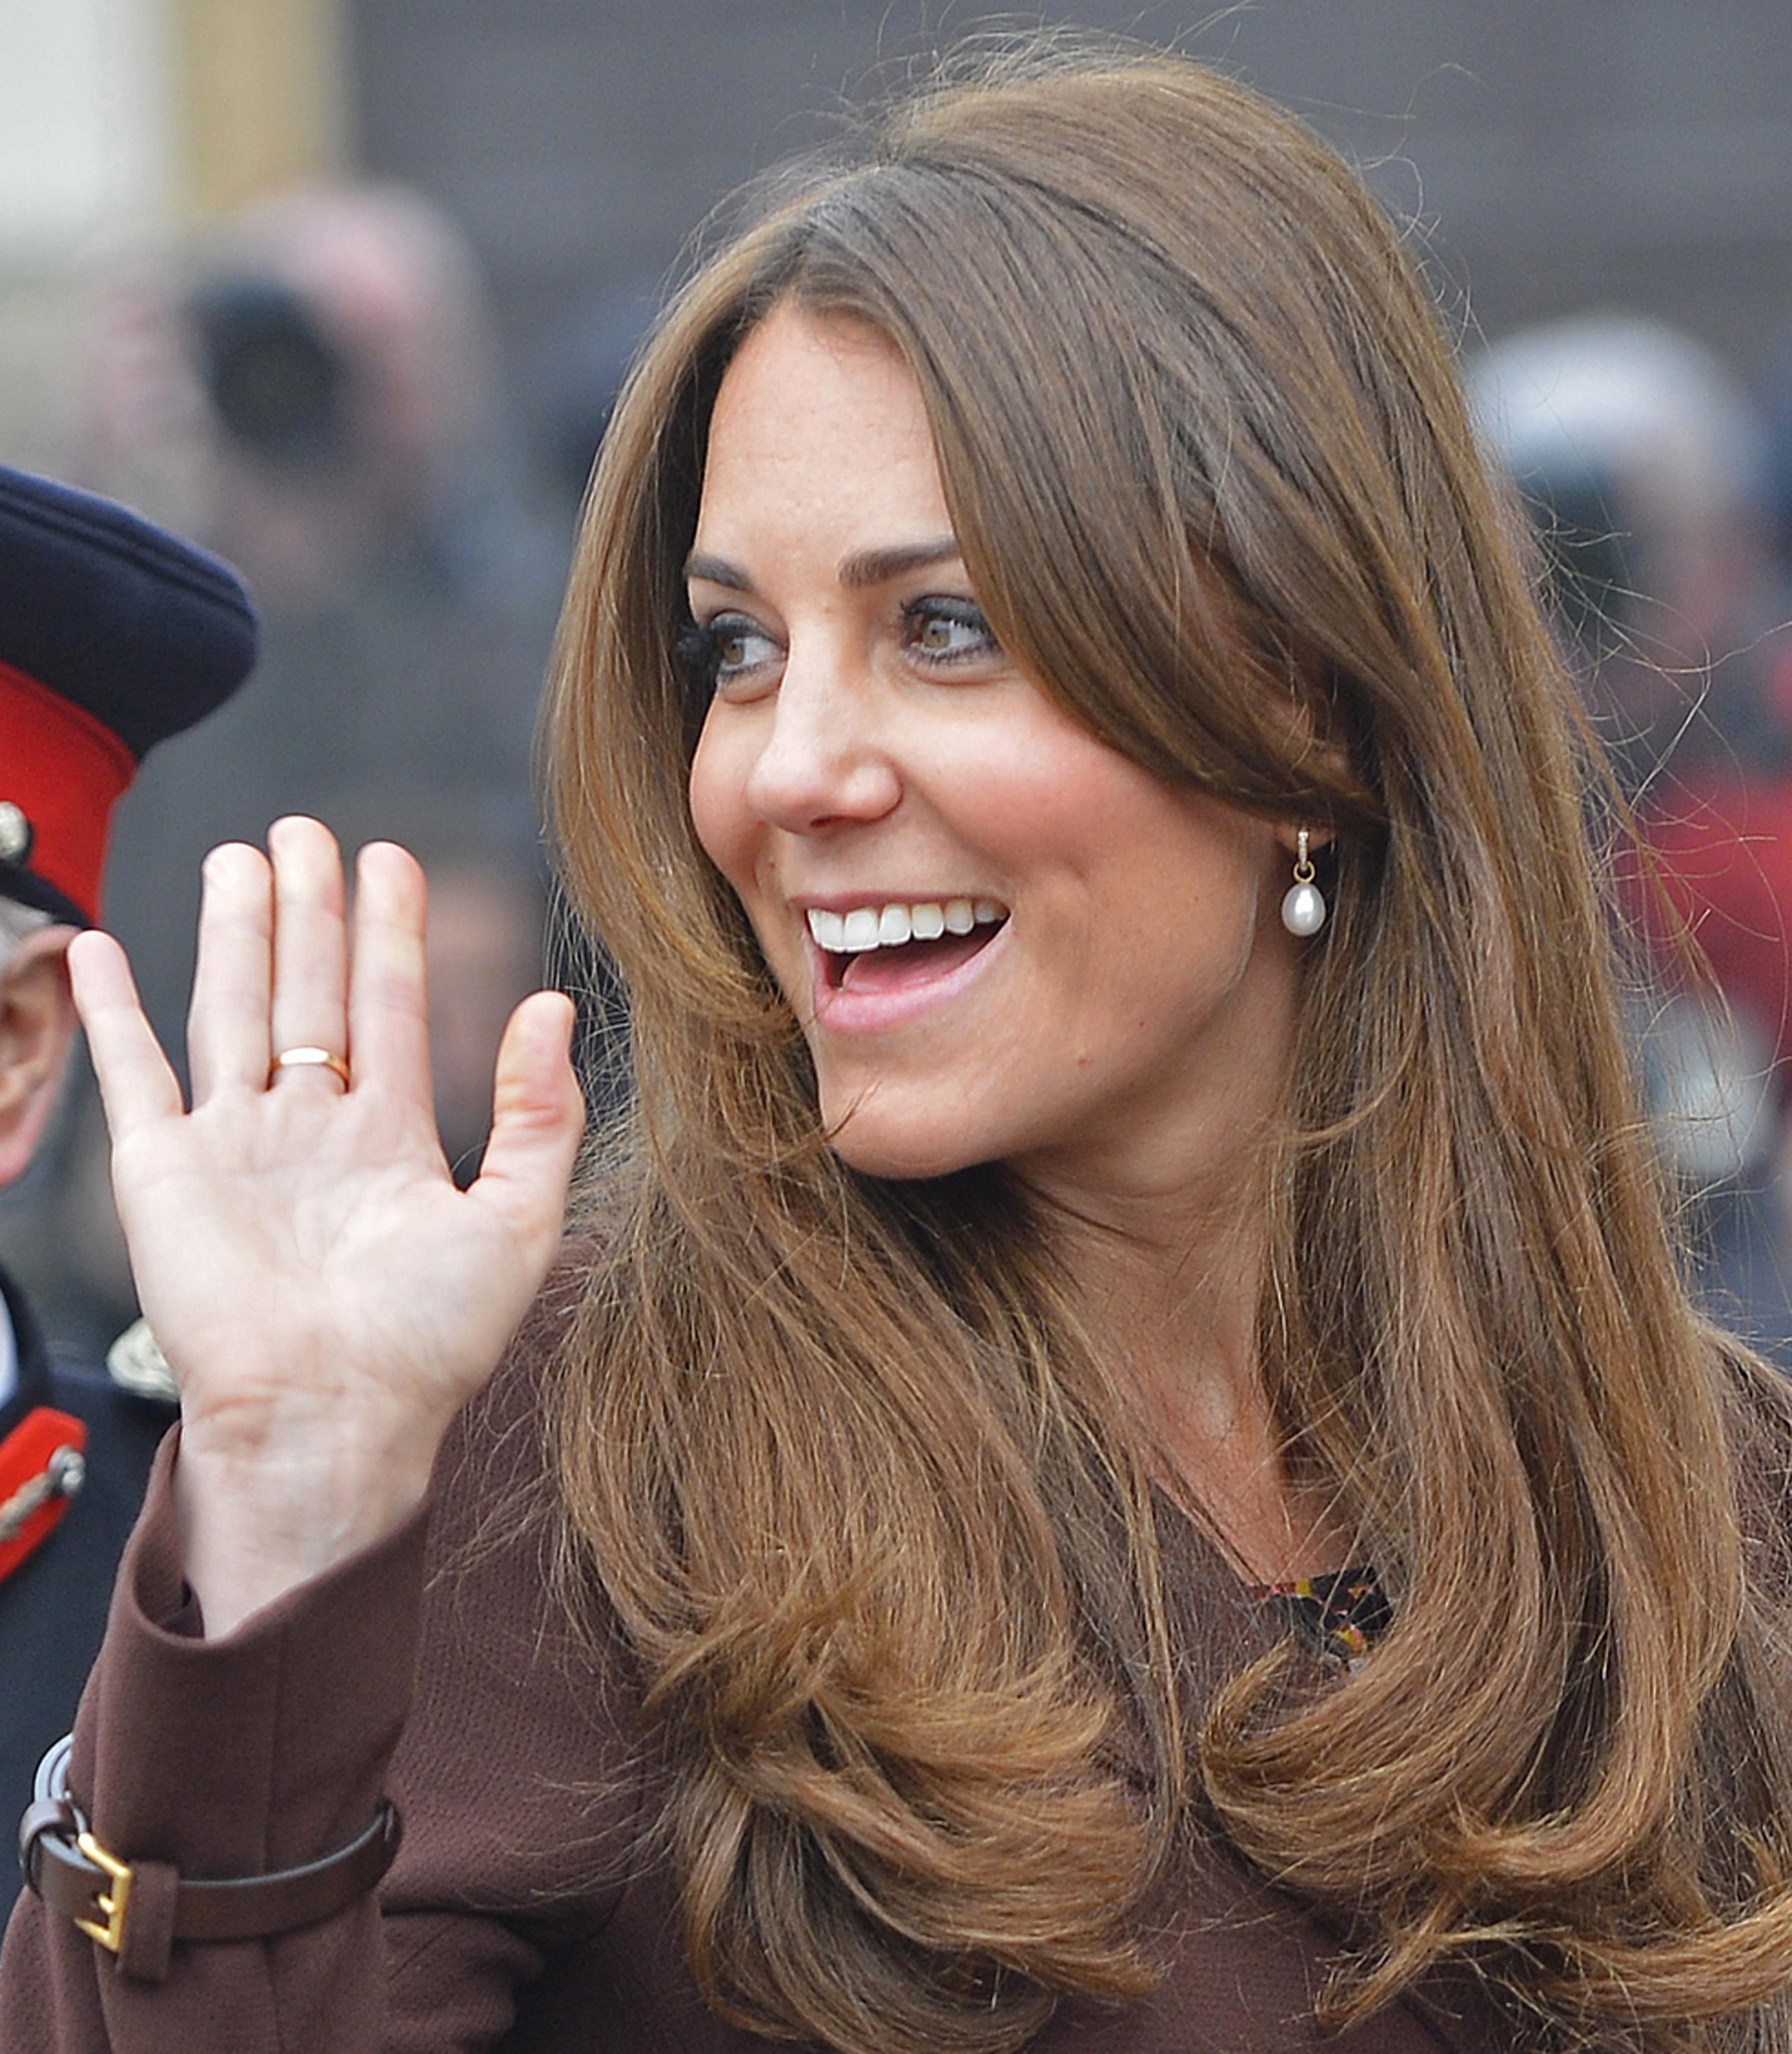 Where Is Kate Middleton?